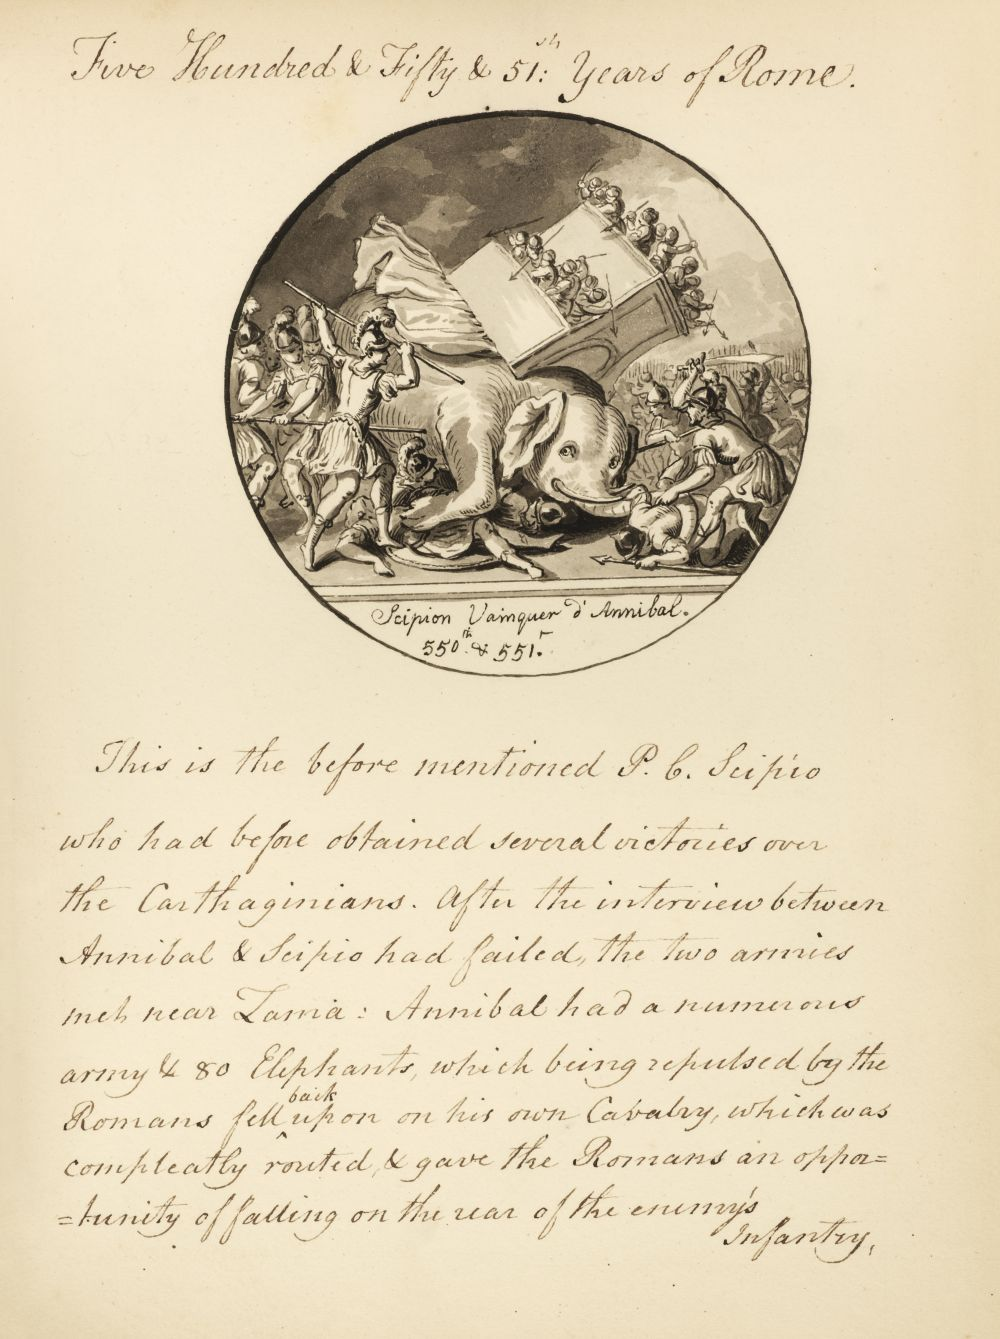 Manuscript. An Explanation of Dassier's Medals, by Charlotte Hanbury, circa 1795-1800 - Image 2 of 3